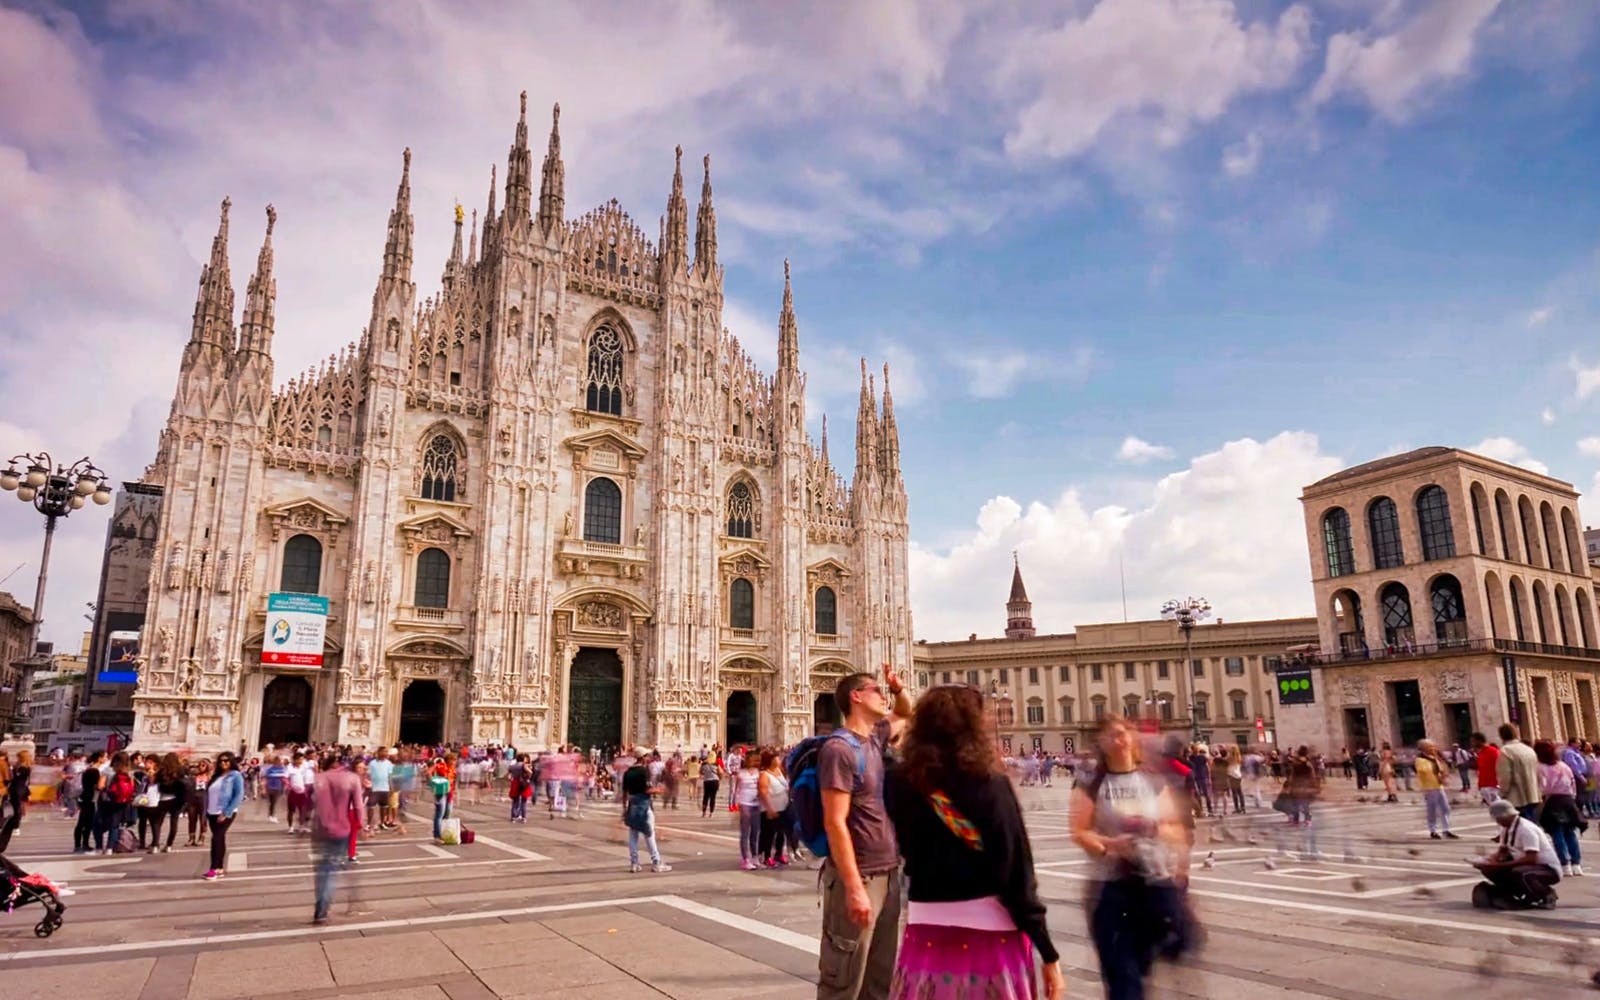 Last Supper, Duomo and Milan walking Tour